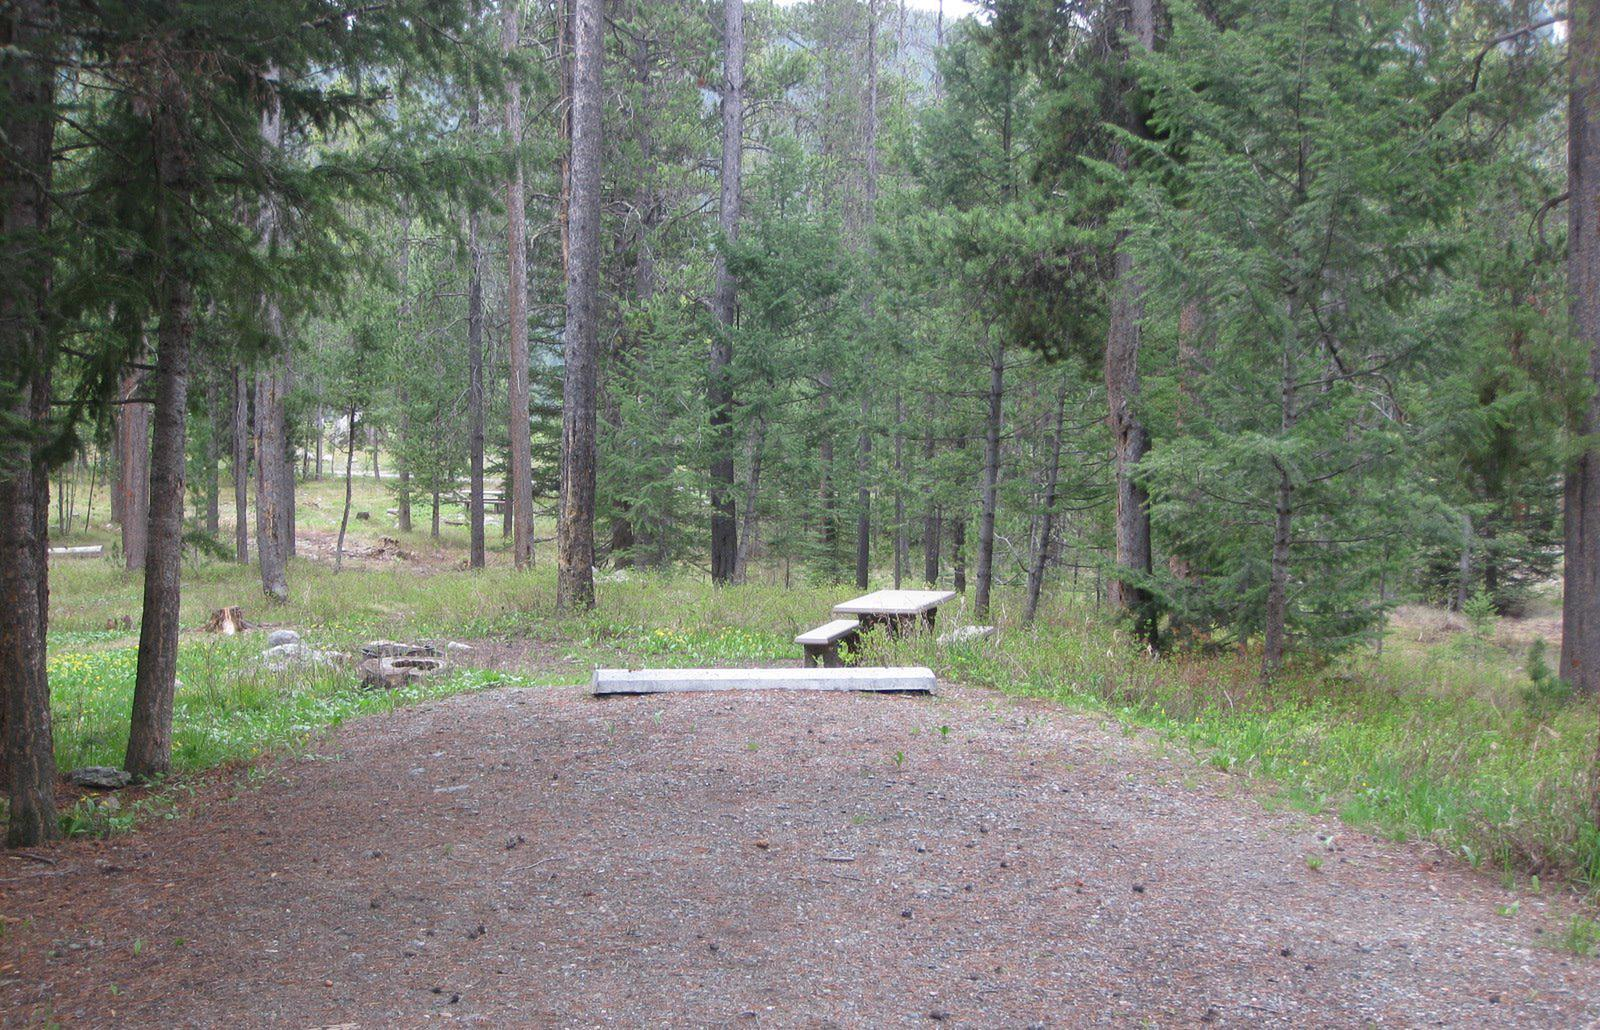 Site C8, campsite surrounded by pine trees, picnic table & fire ringSite C8